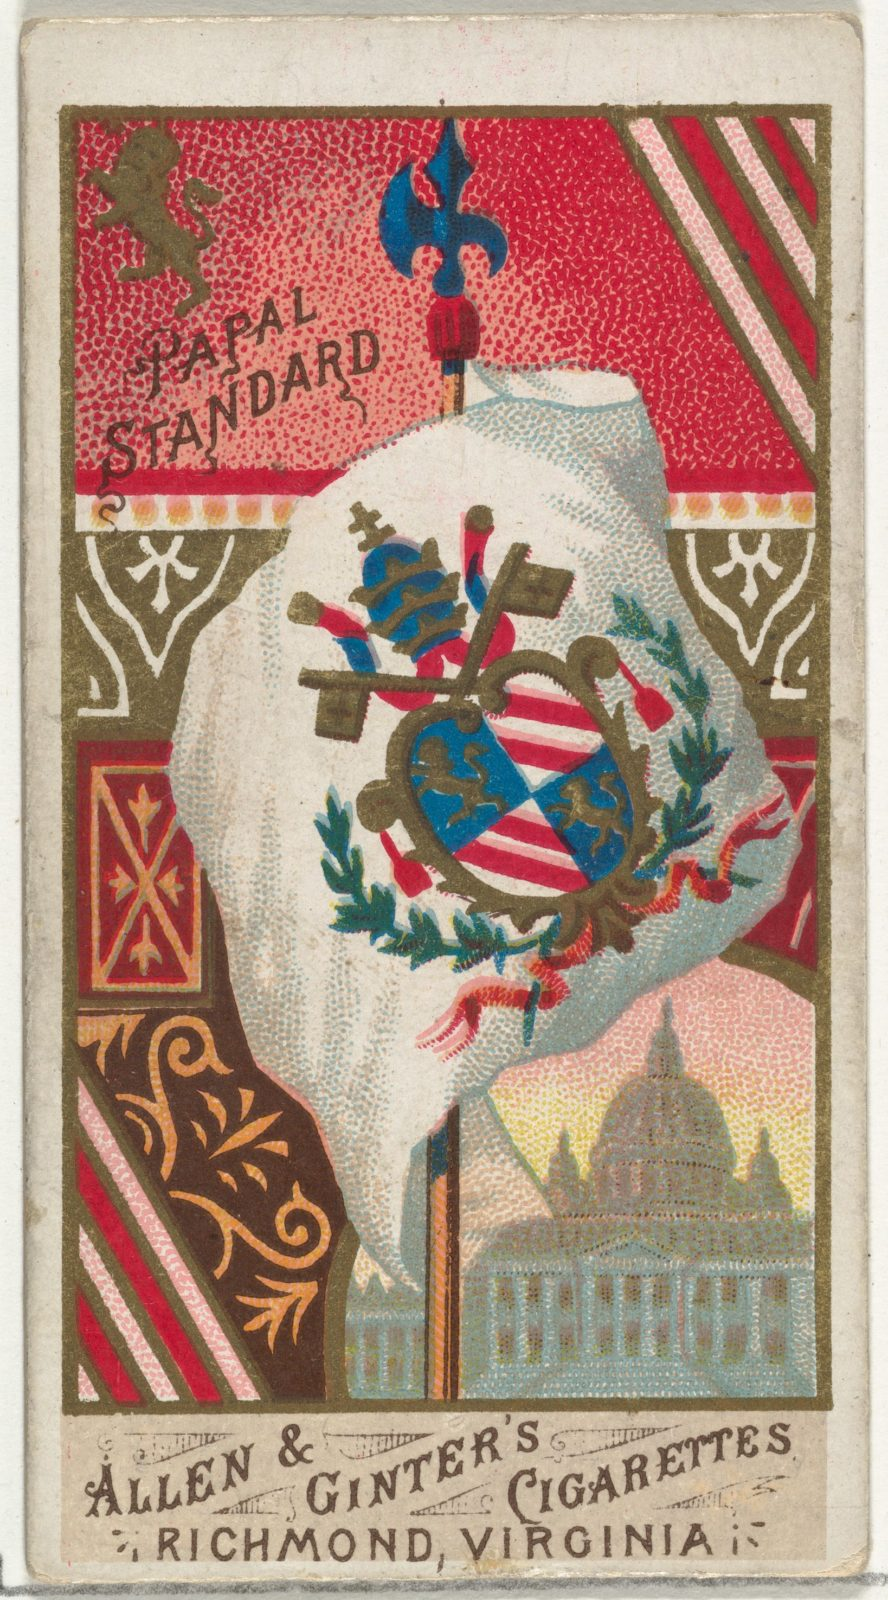 Papal Standard, from Flags of All Nations, Series 1 (N9) for Allen & Ginter Cigarettes Brands